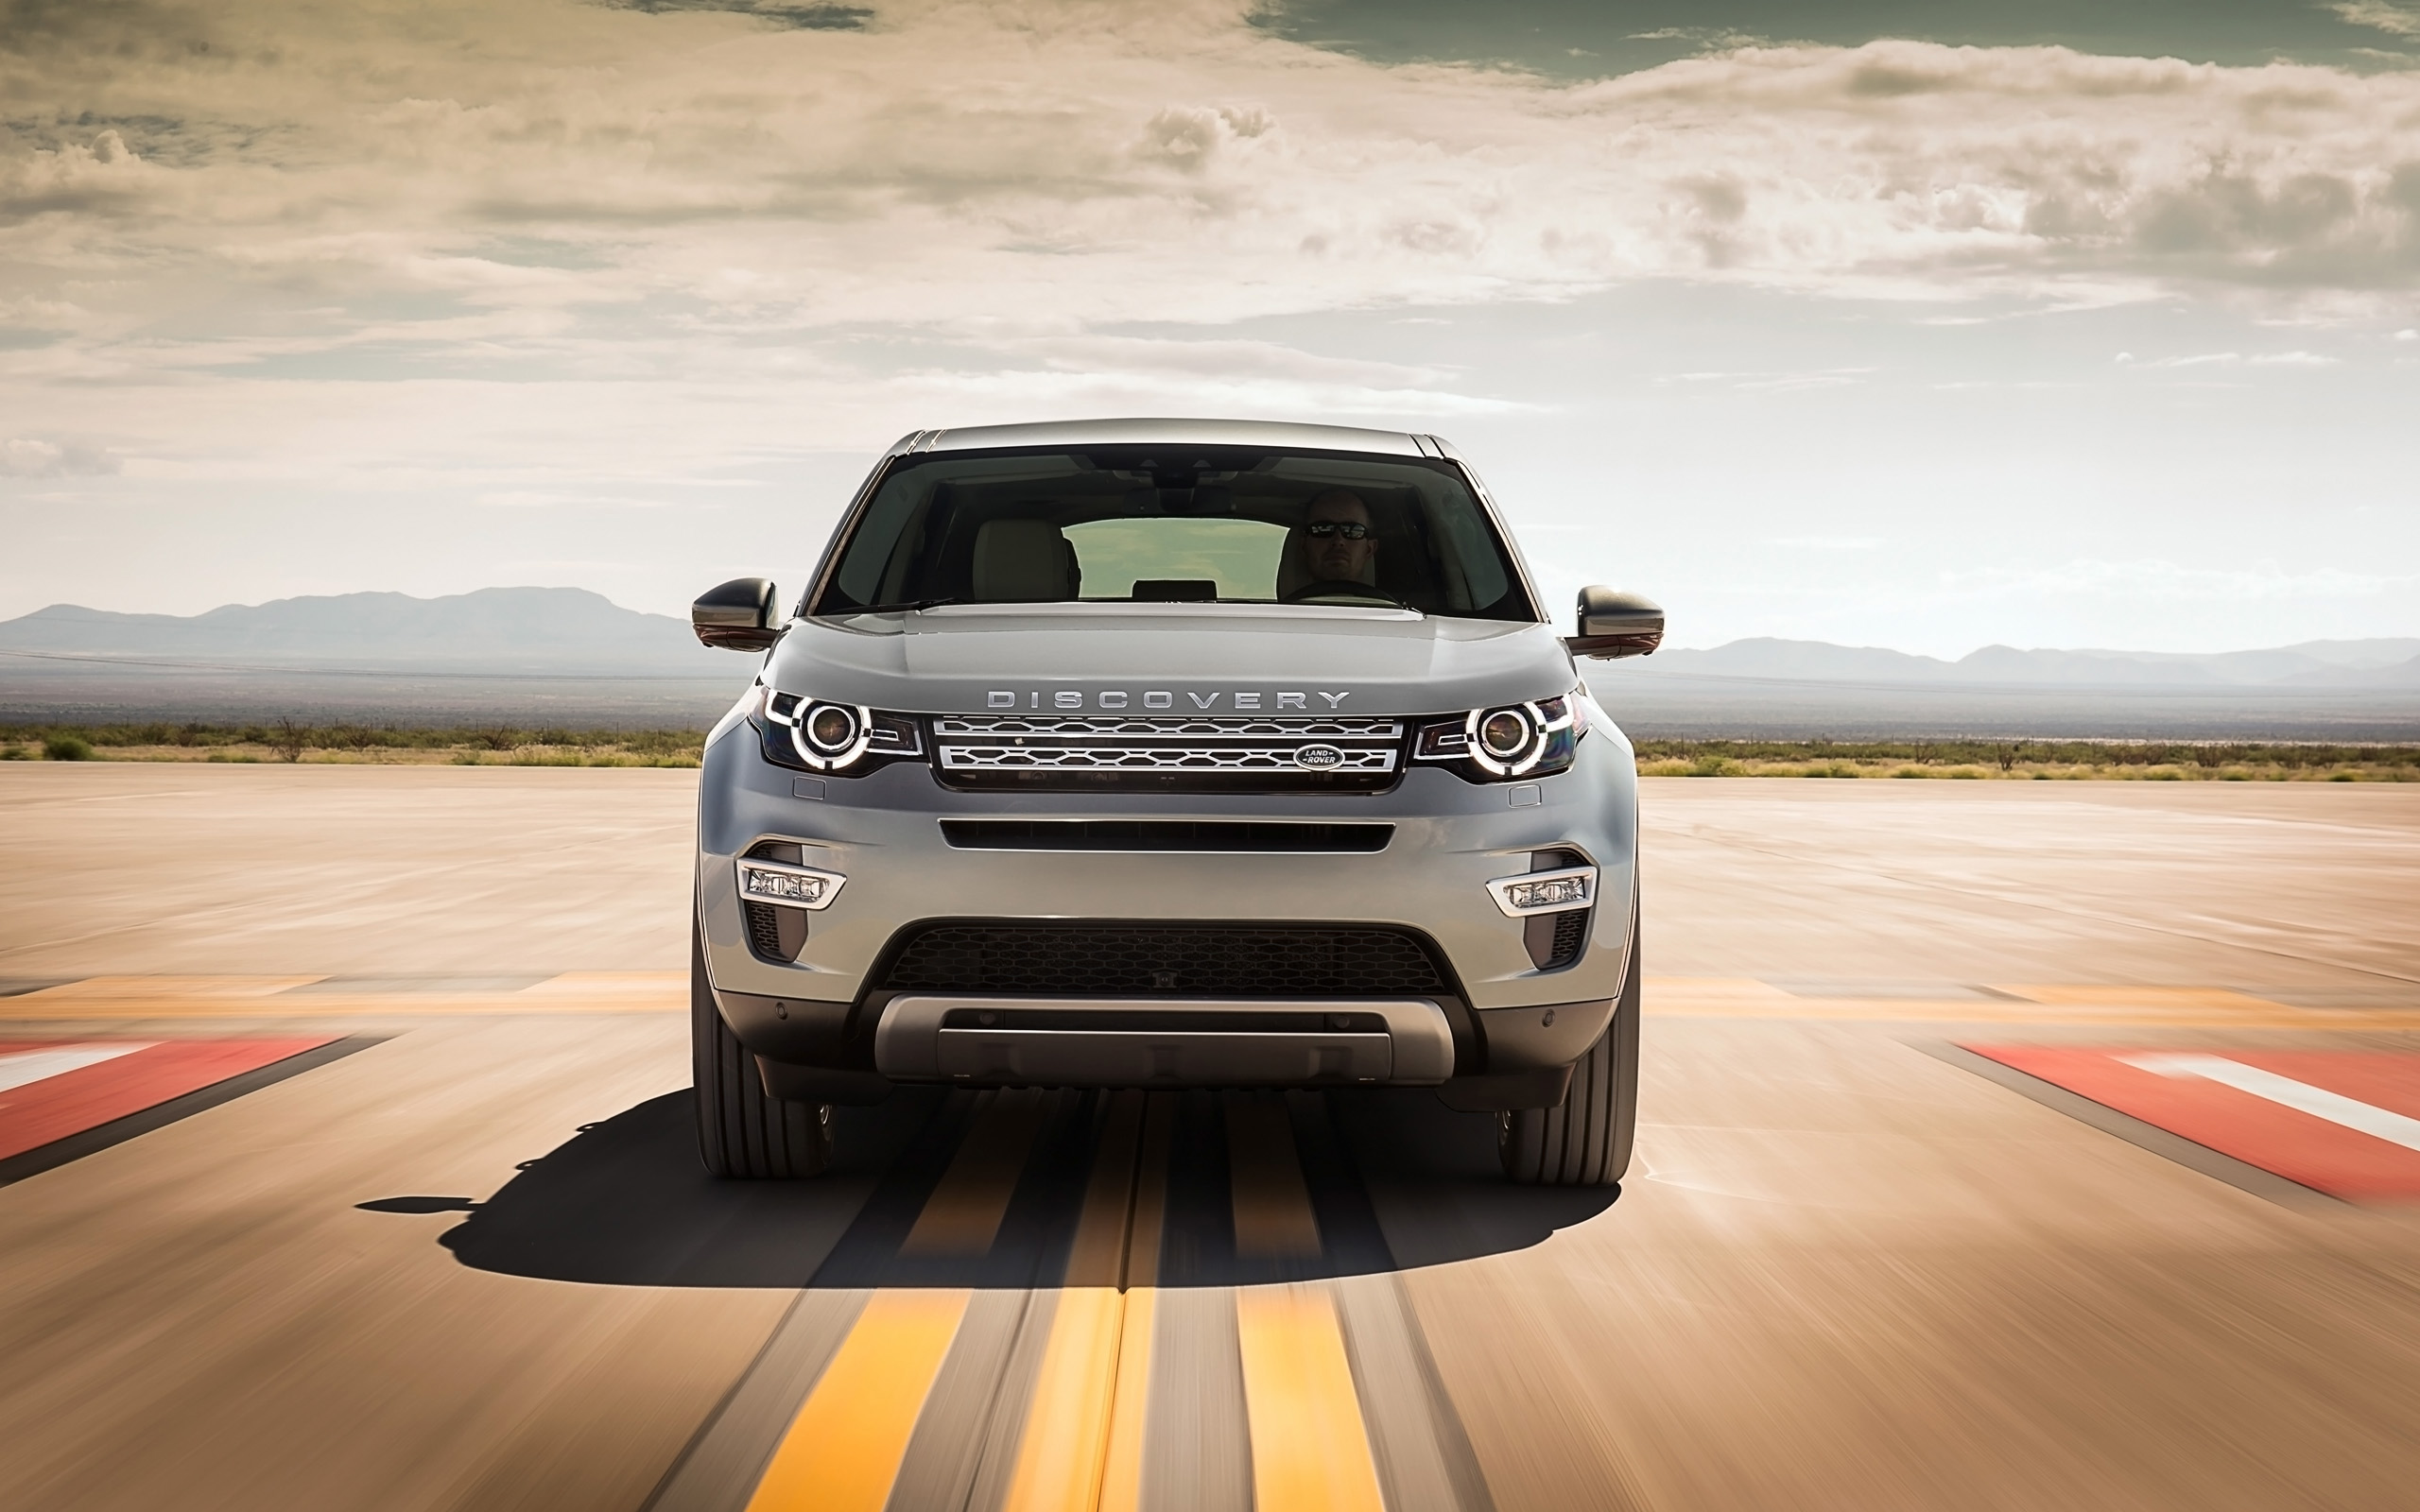 Discovery Sport Wallpaper Android: 2015 Land Rover Discovery Sport 2 Wallpaper